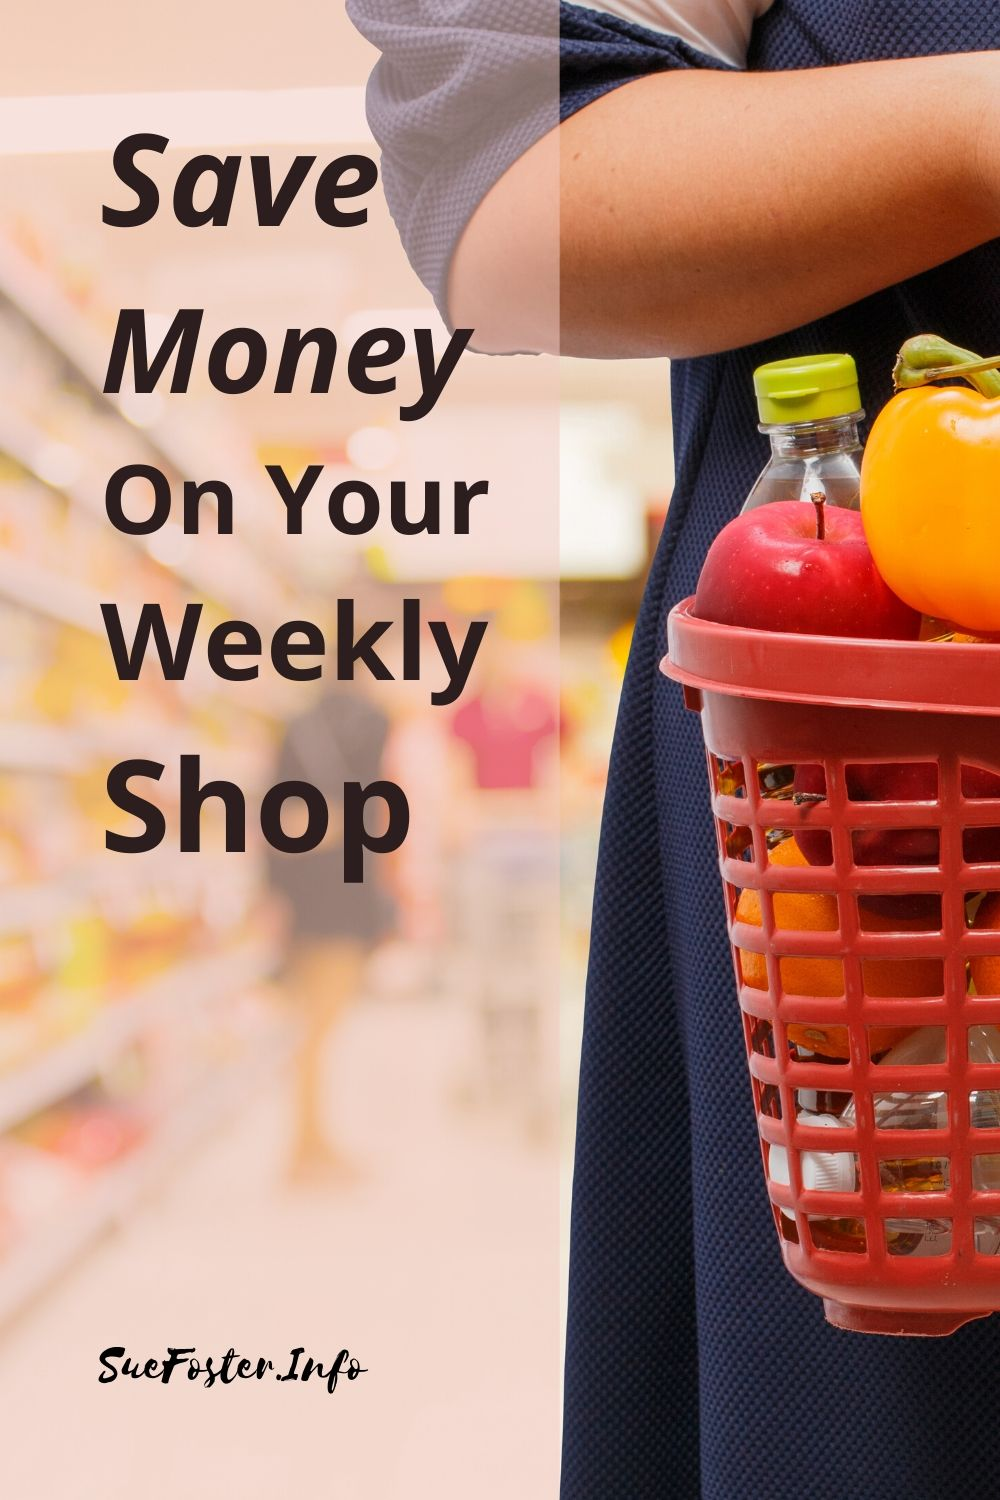 10 tips to help you save money on your weekly shop.